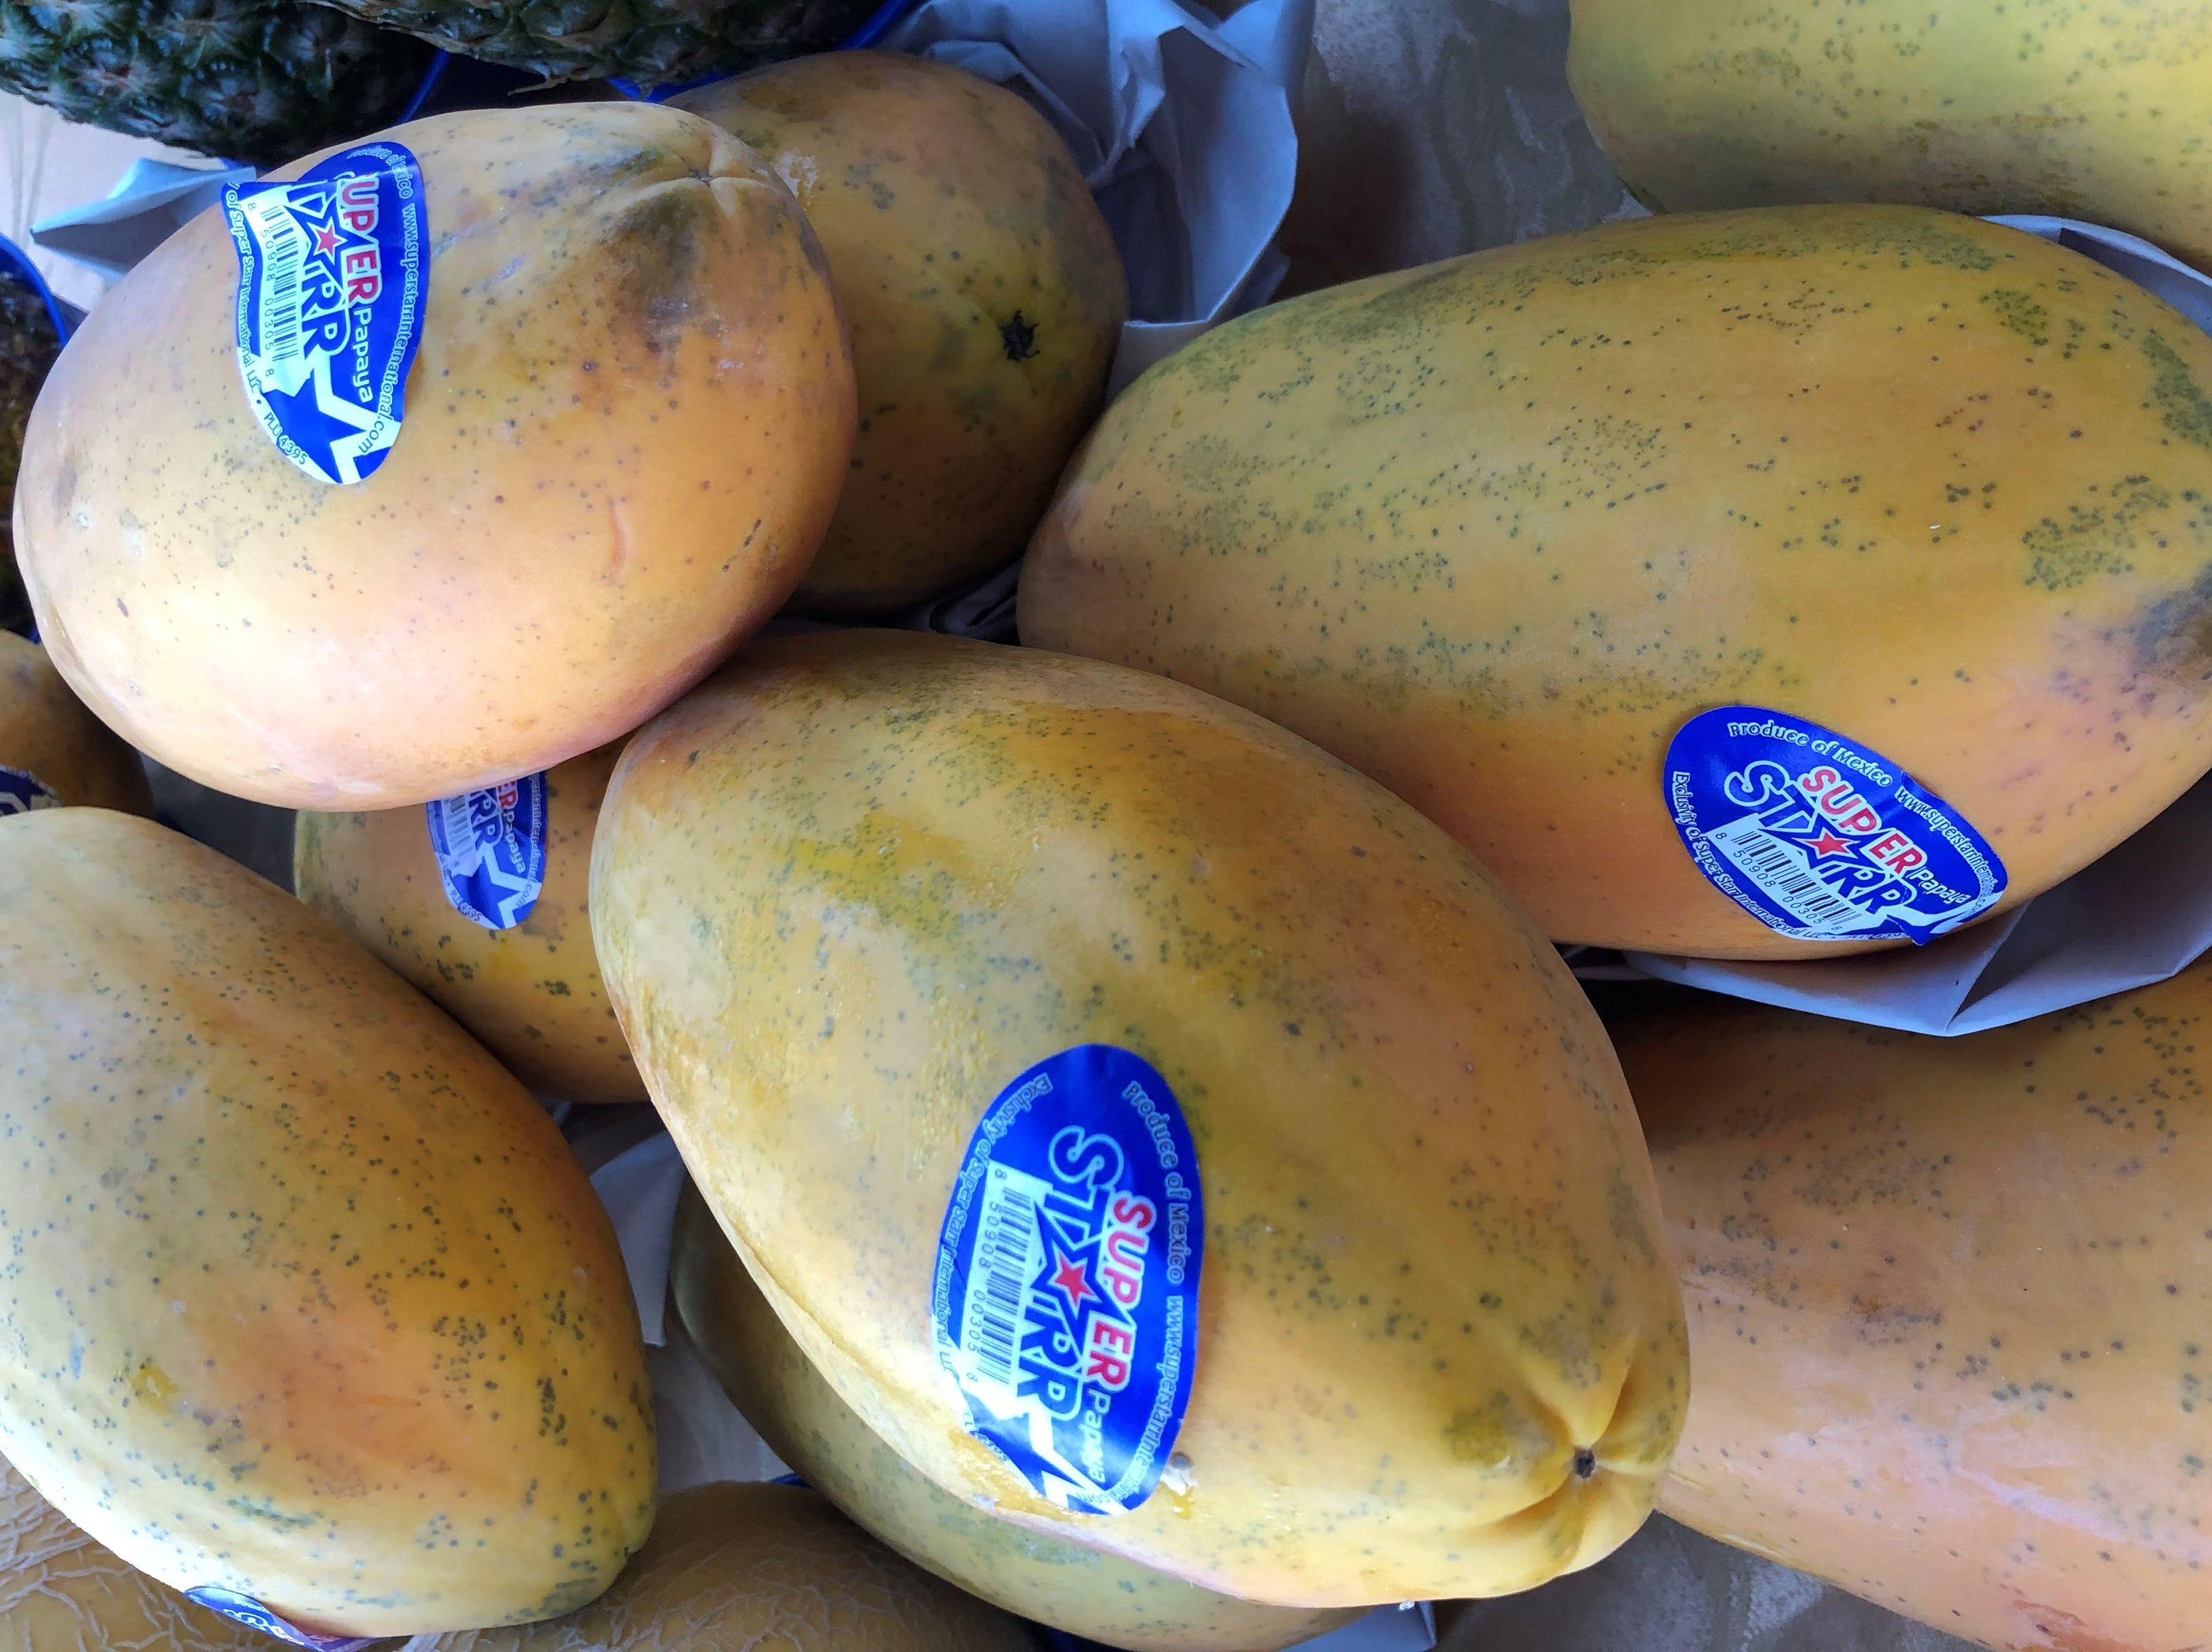 These papya's are gord-gous. Opening day for the Marco Island Farmers Market at Veterans Community Park was Wednesday, Nov. 14, 2018.